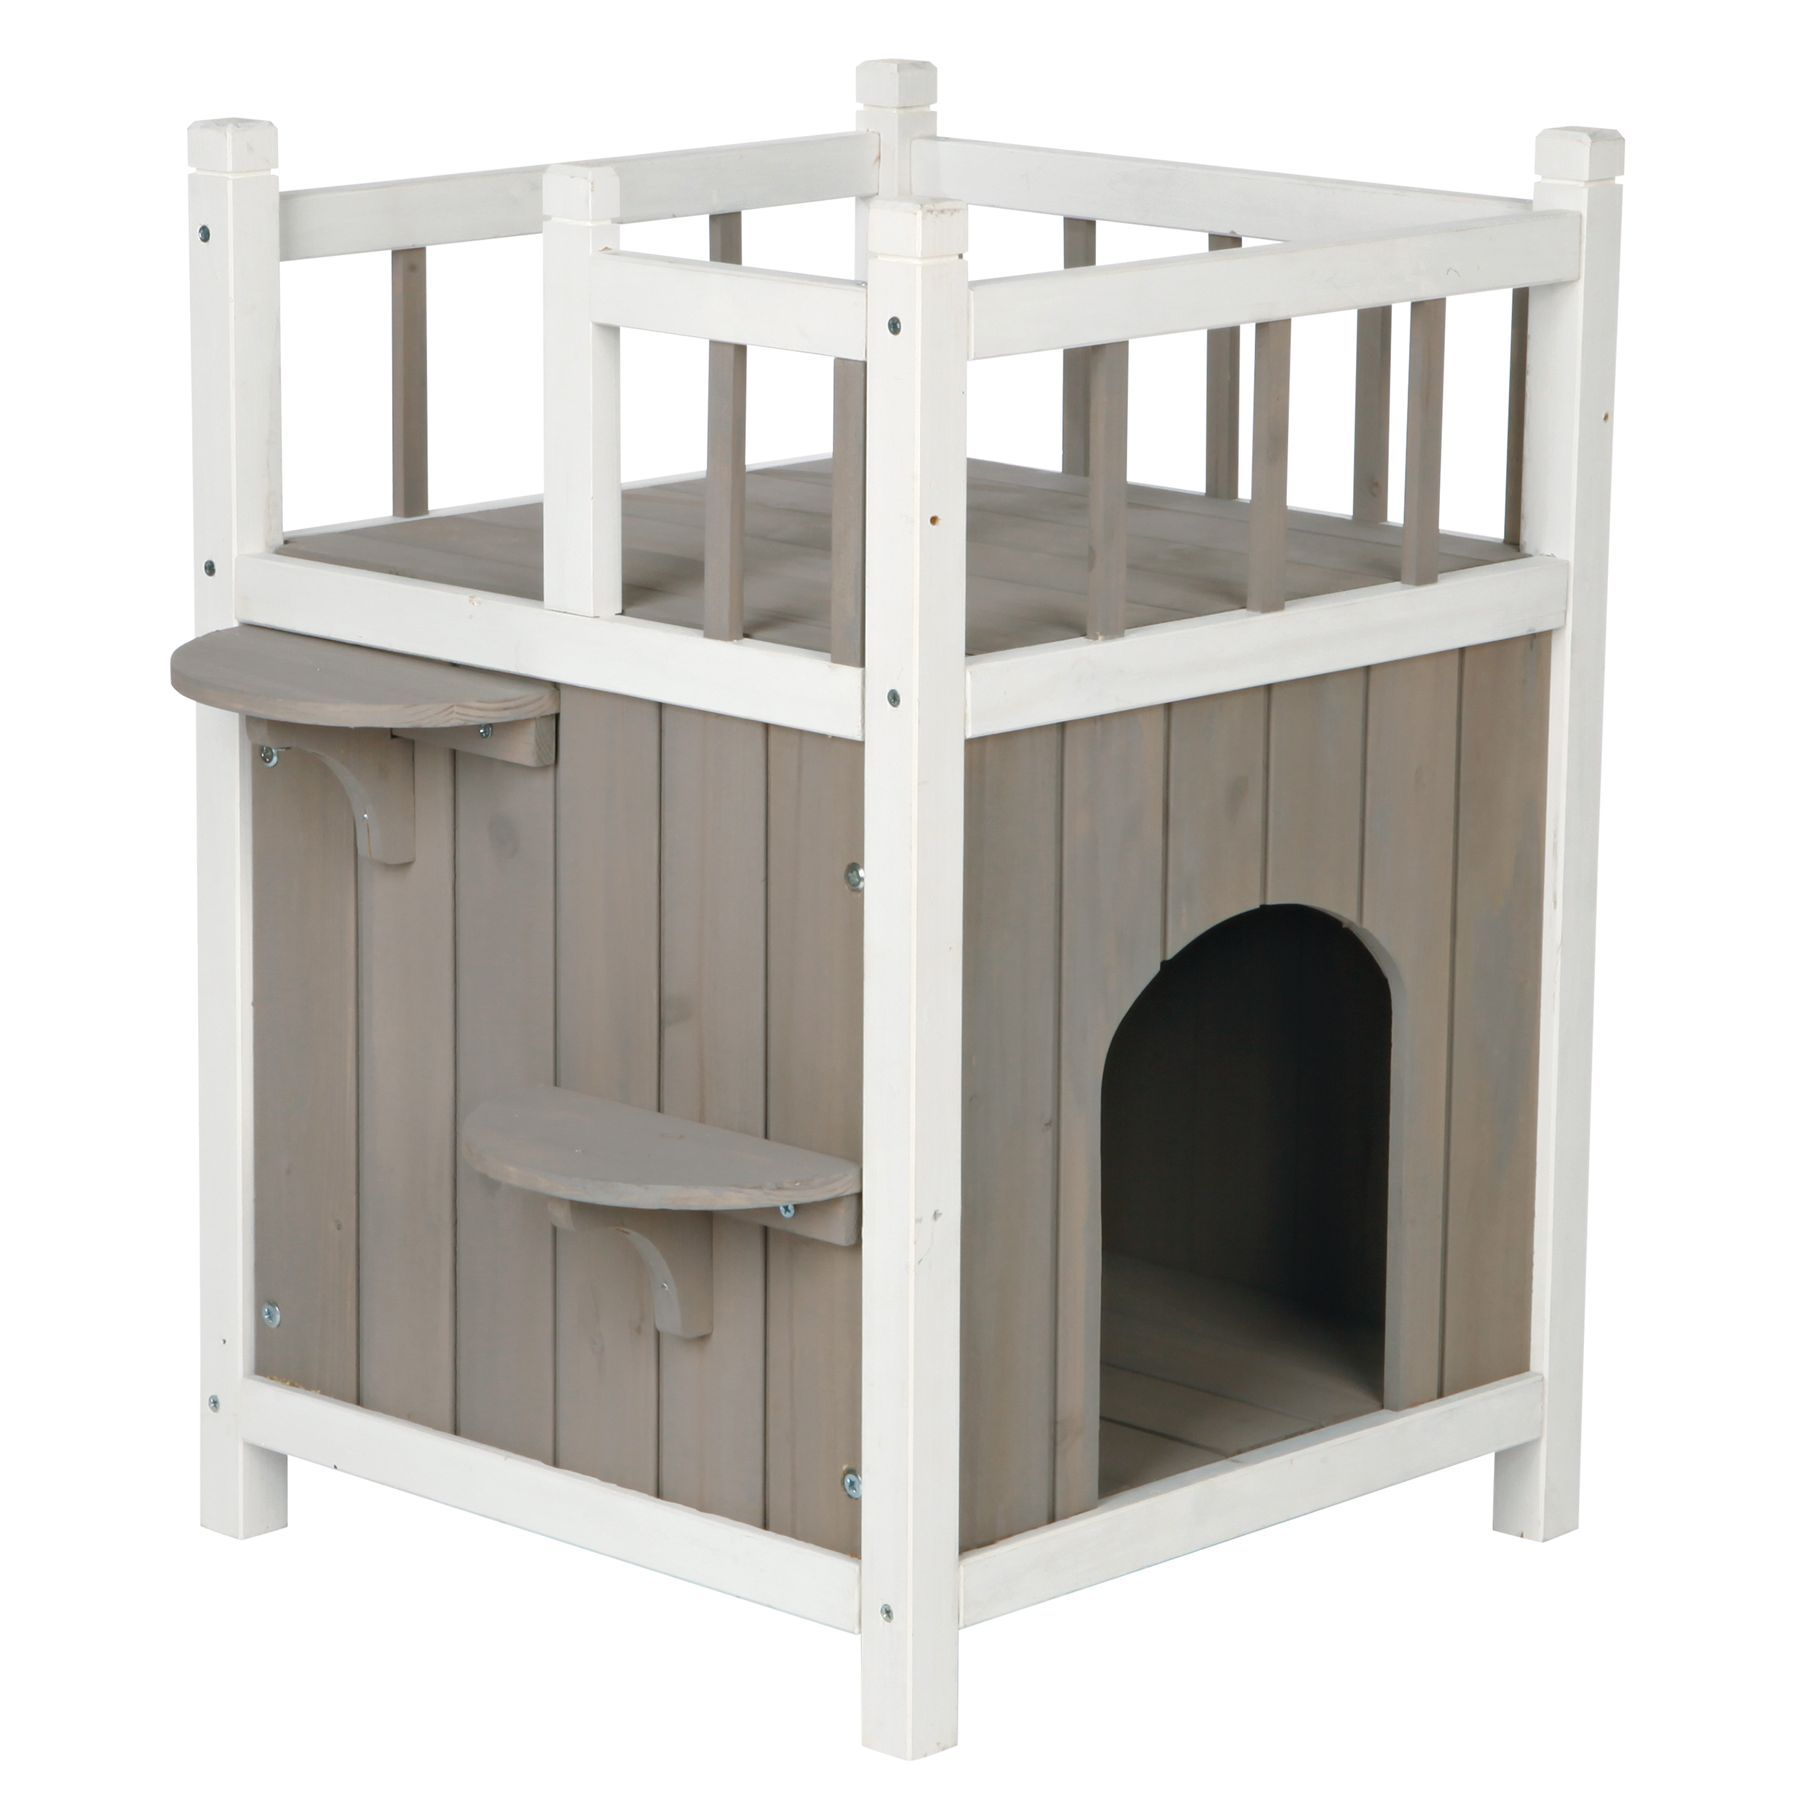 Trixie Balcony Cat Home Outdoor Cat House Wooden Cat House Pet Home